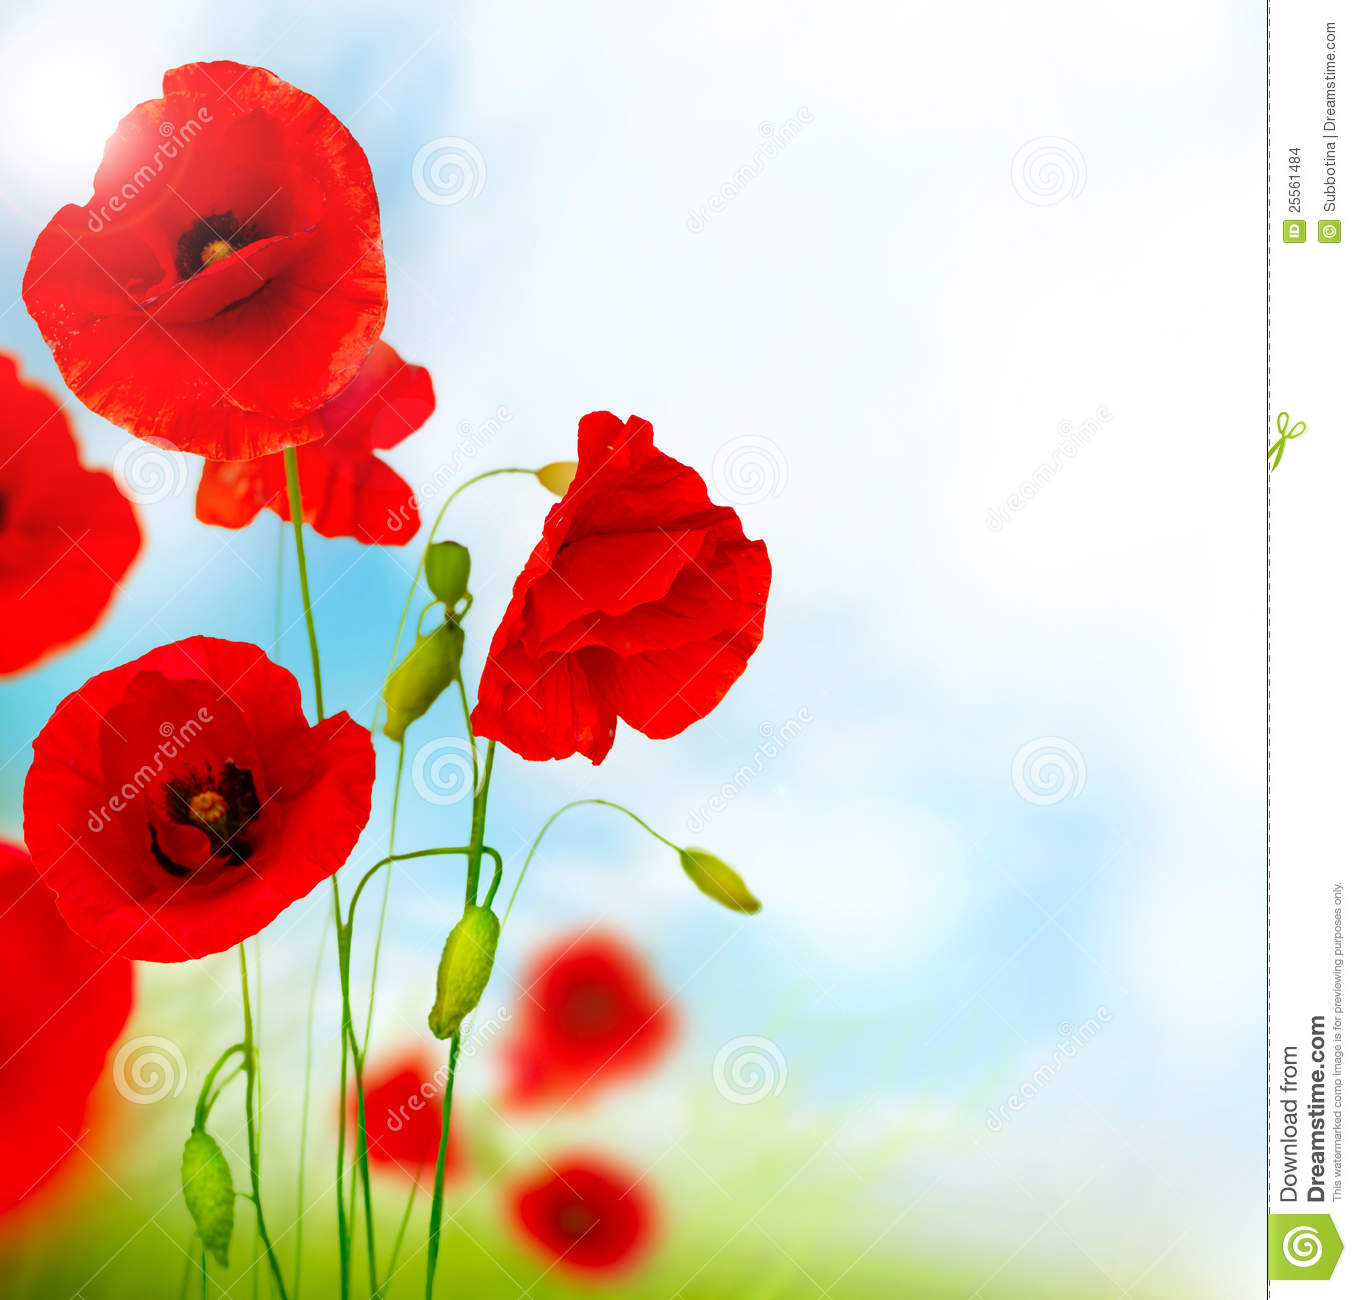 Download Red Poppy Flower stock photo. Image of floral, bloom - 25561484